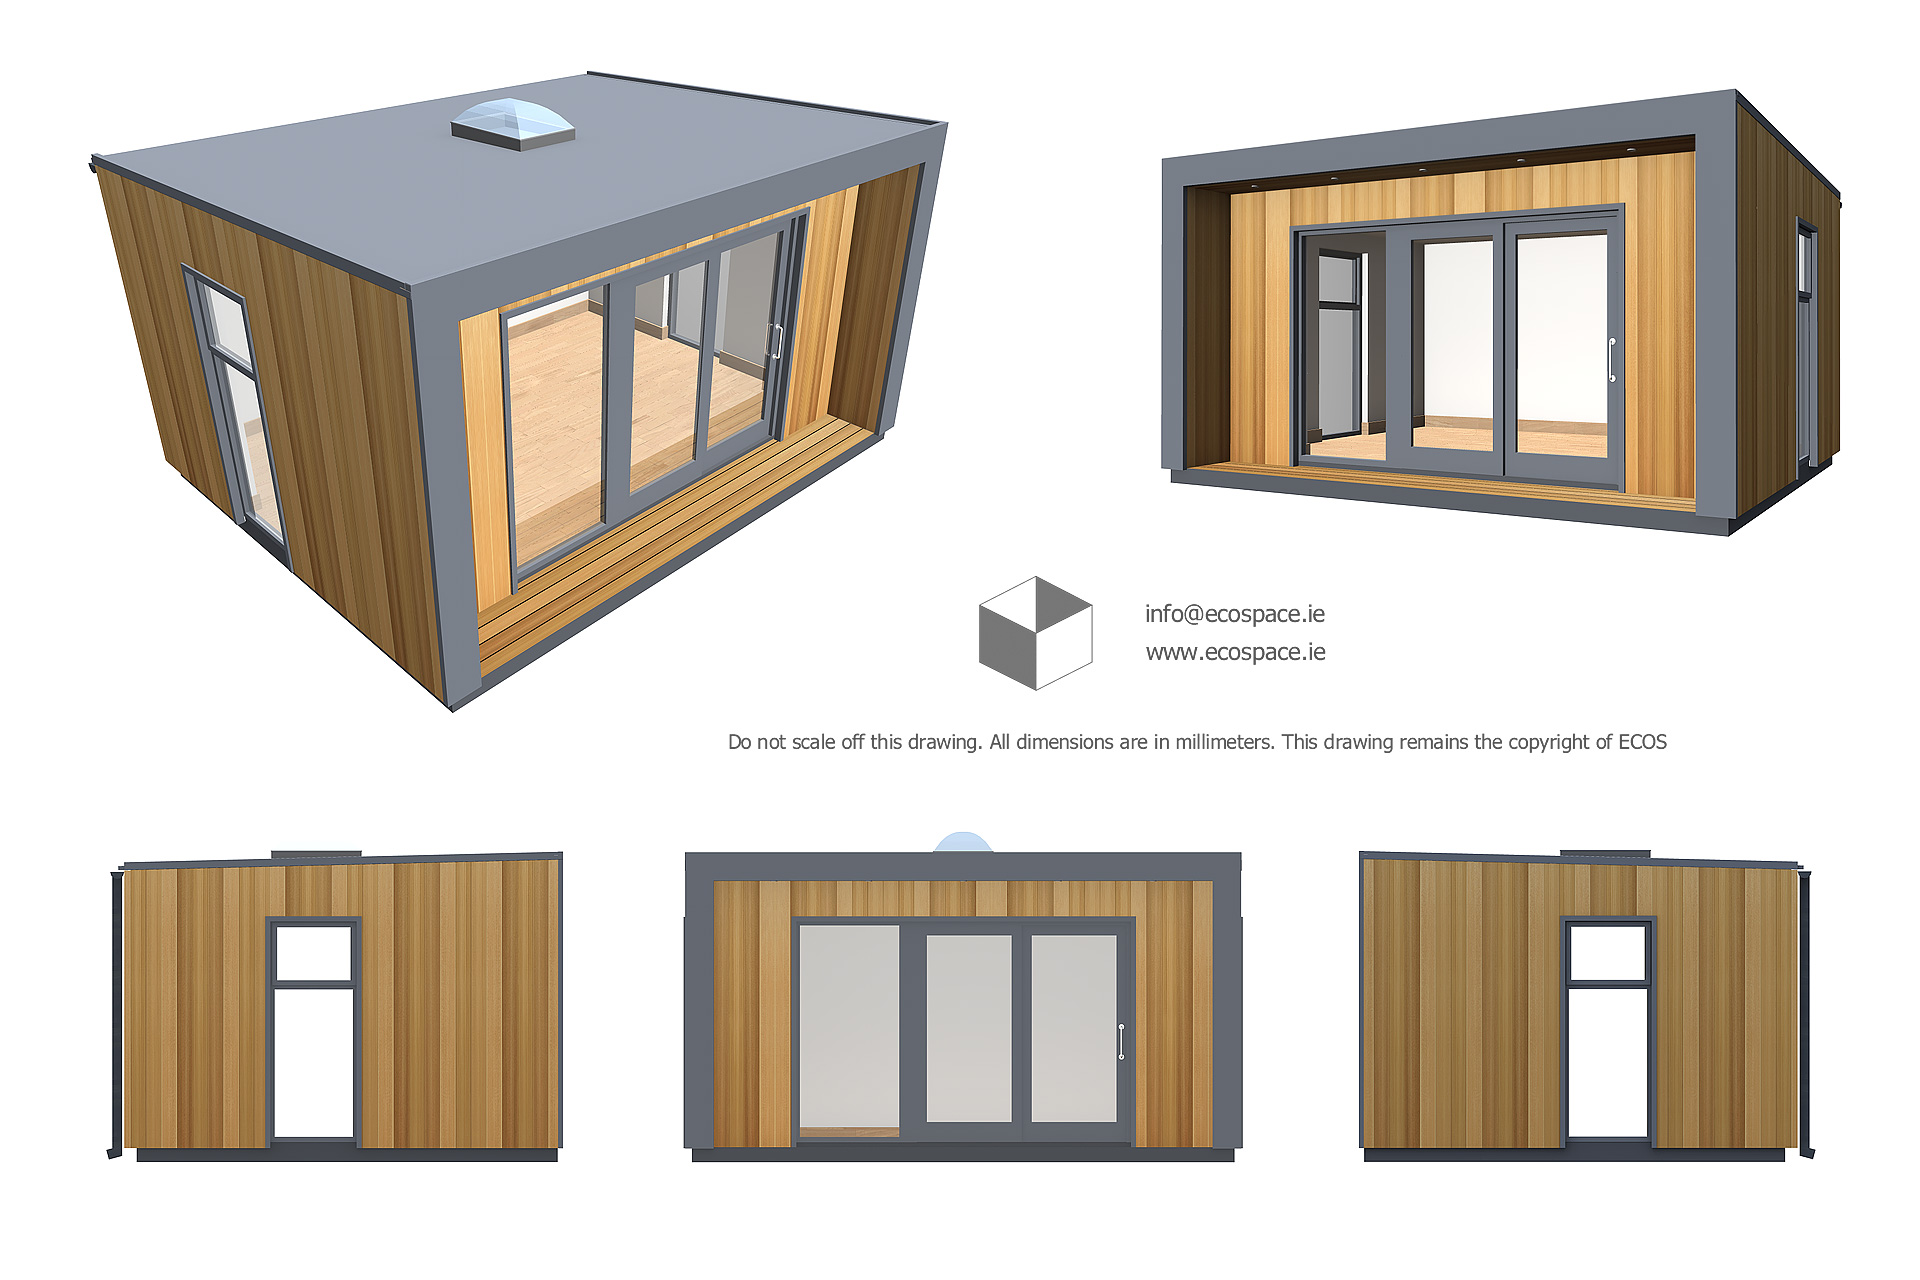 Garden studios 20120325en ecos ireland for Room roof design images